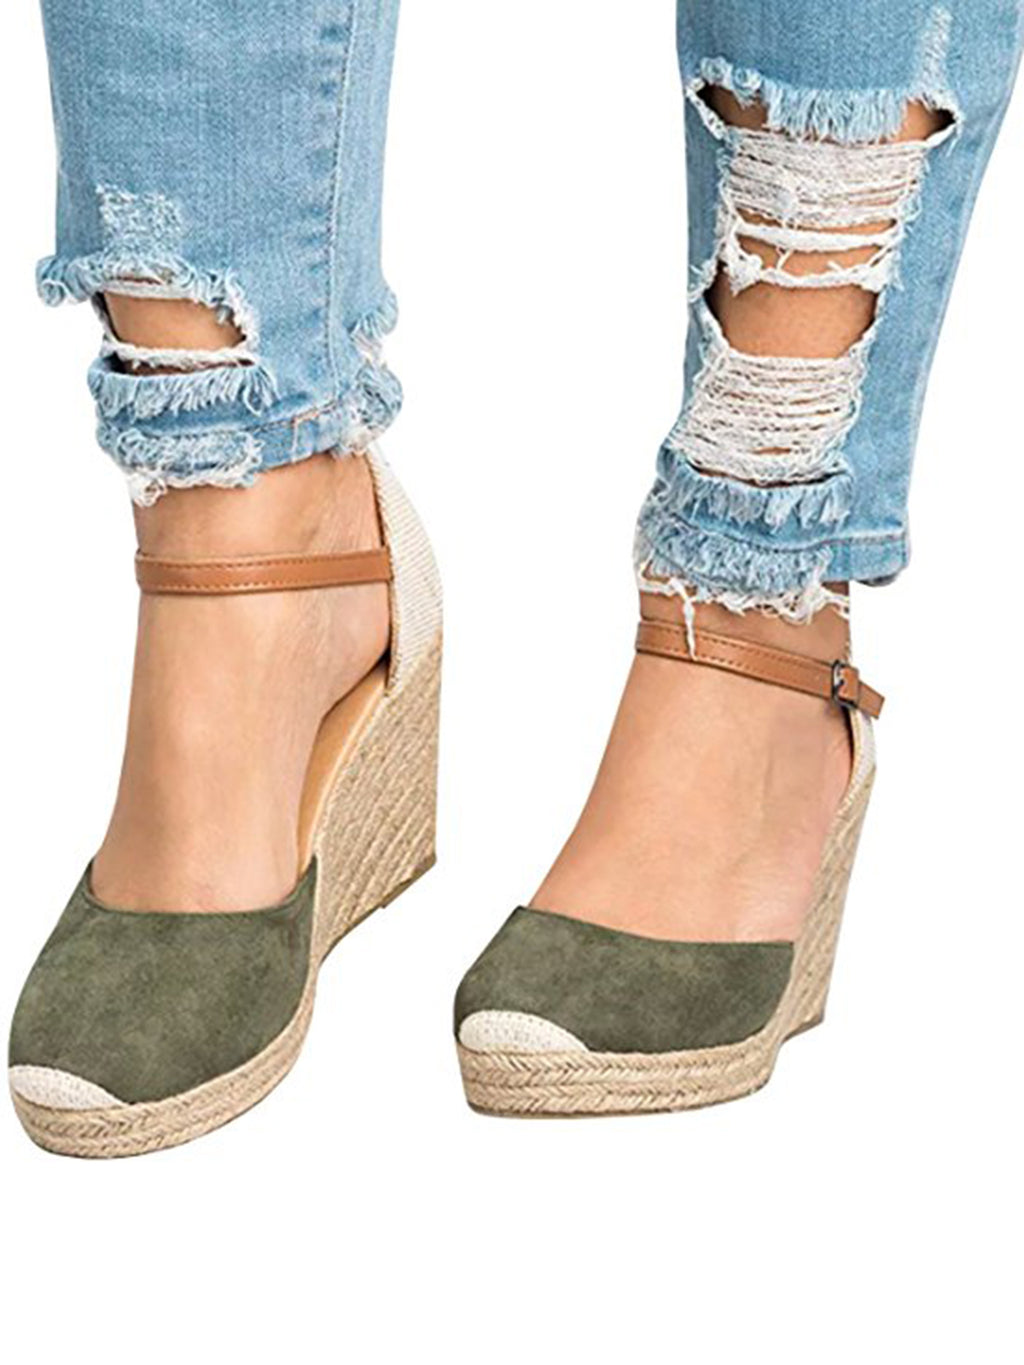 Wedges Shoes for Women Espadrilles Heels Ferbia Ankle Strap Fall Summer Sandals